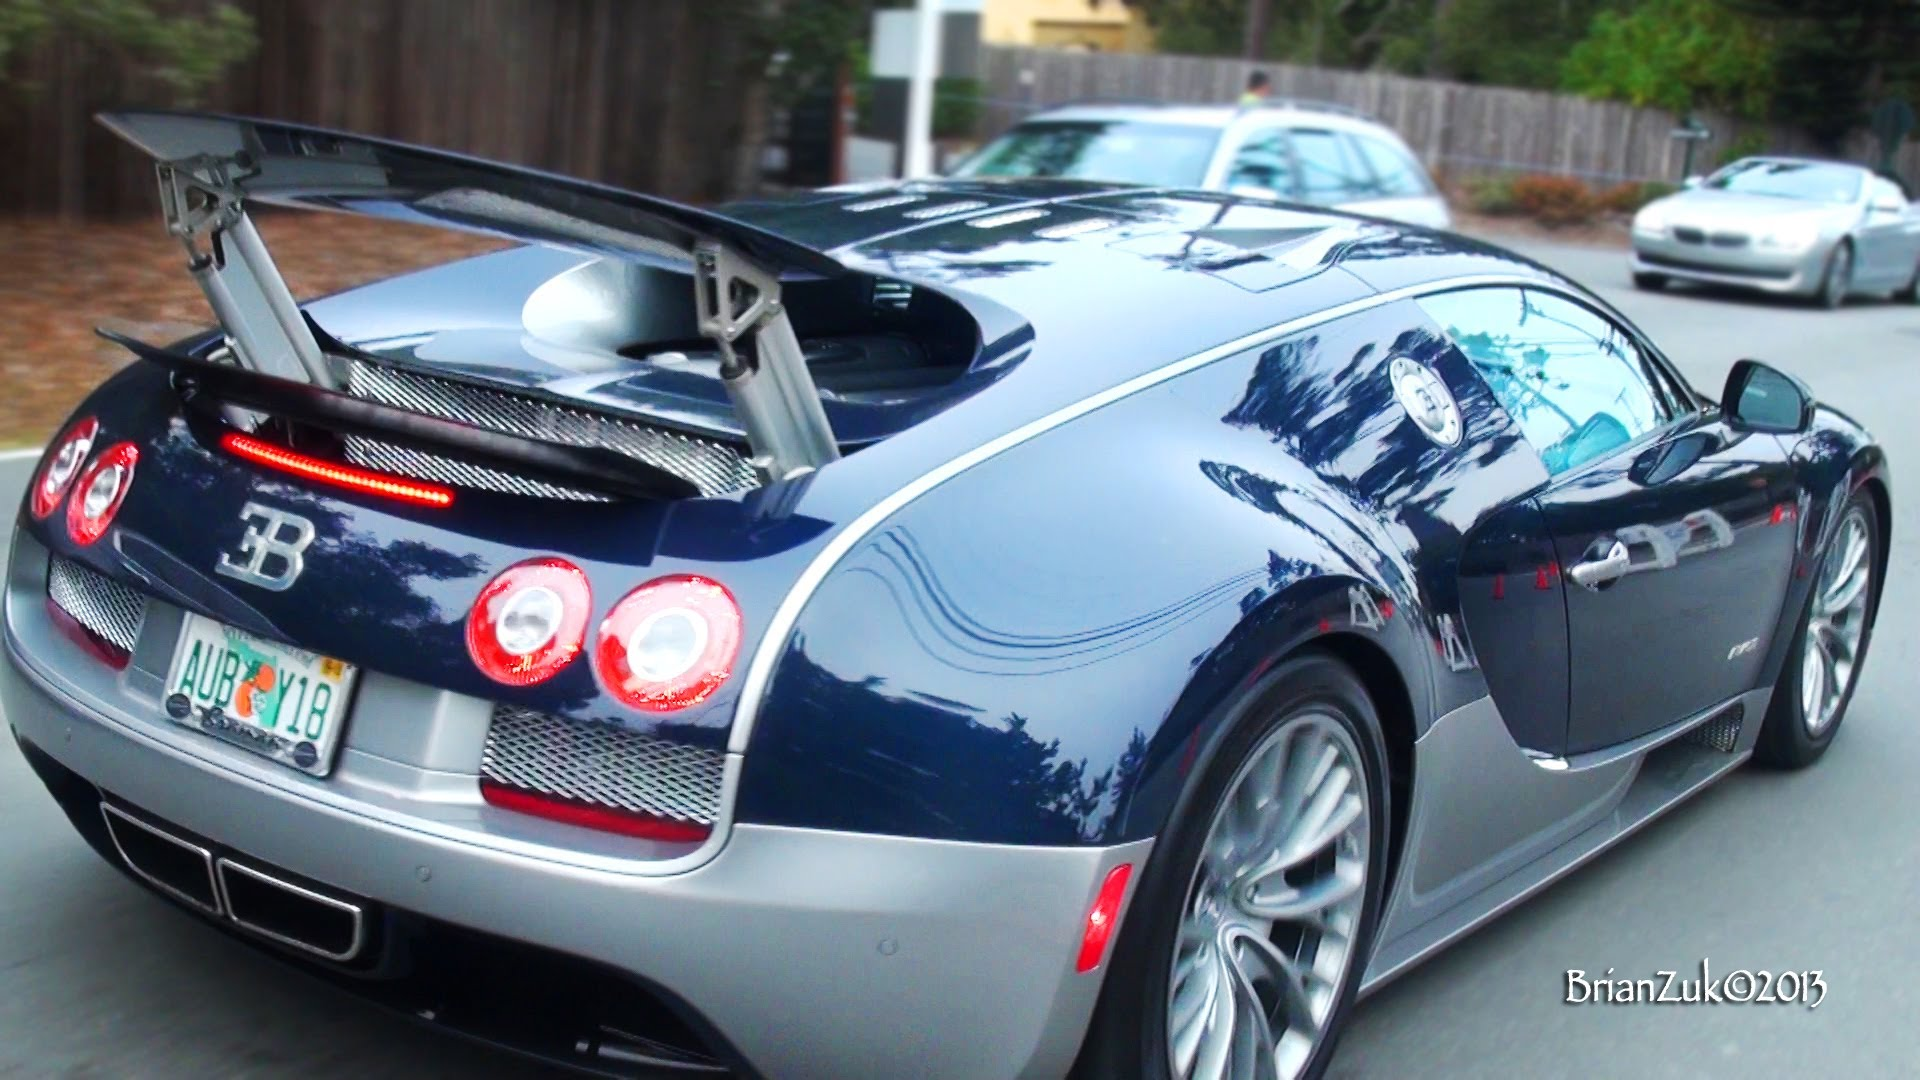 Bugatti Veyron Super Sport Blue Chrome Bugatti 2014 Chrome